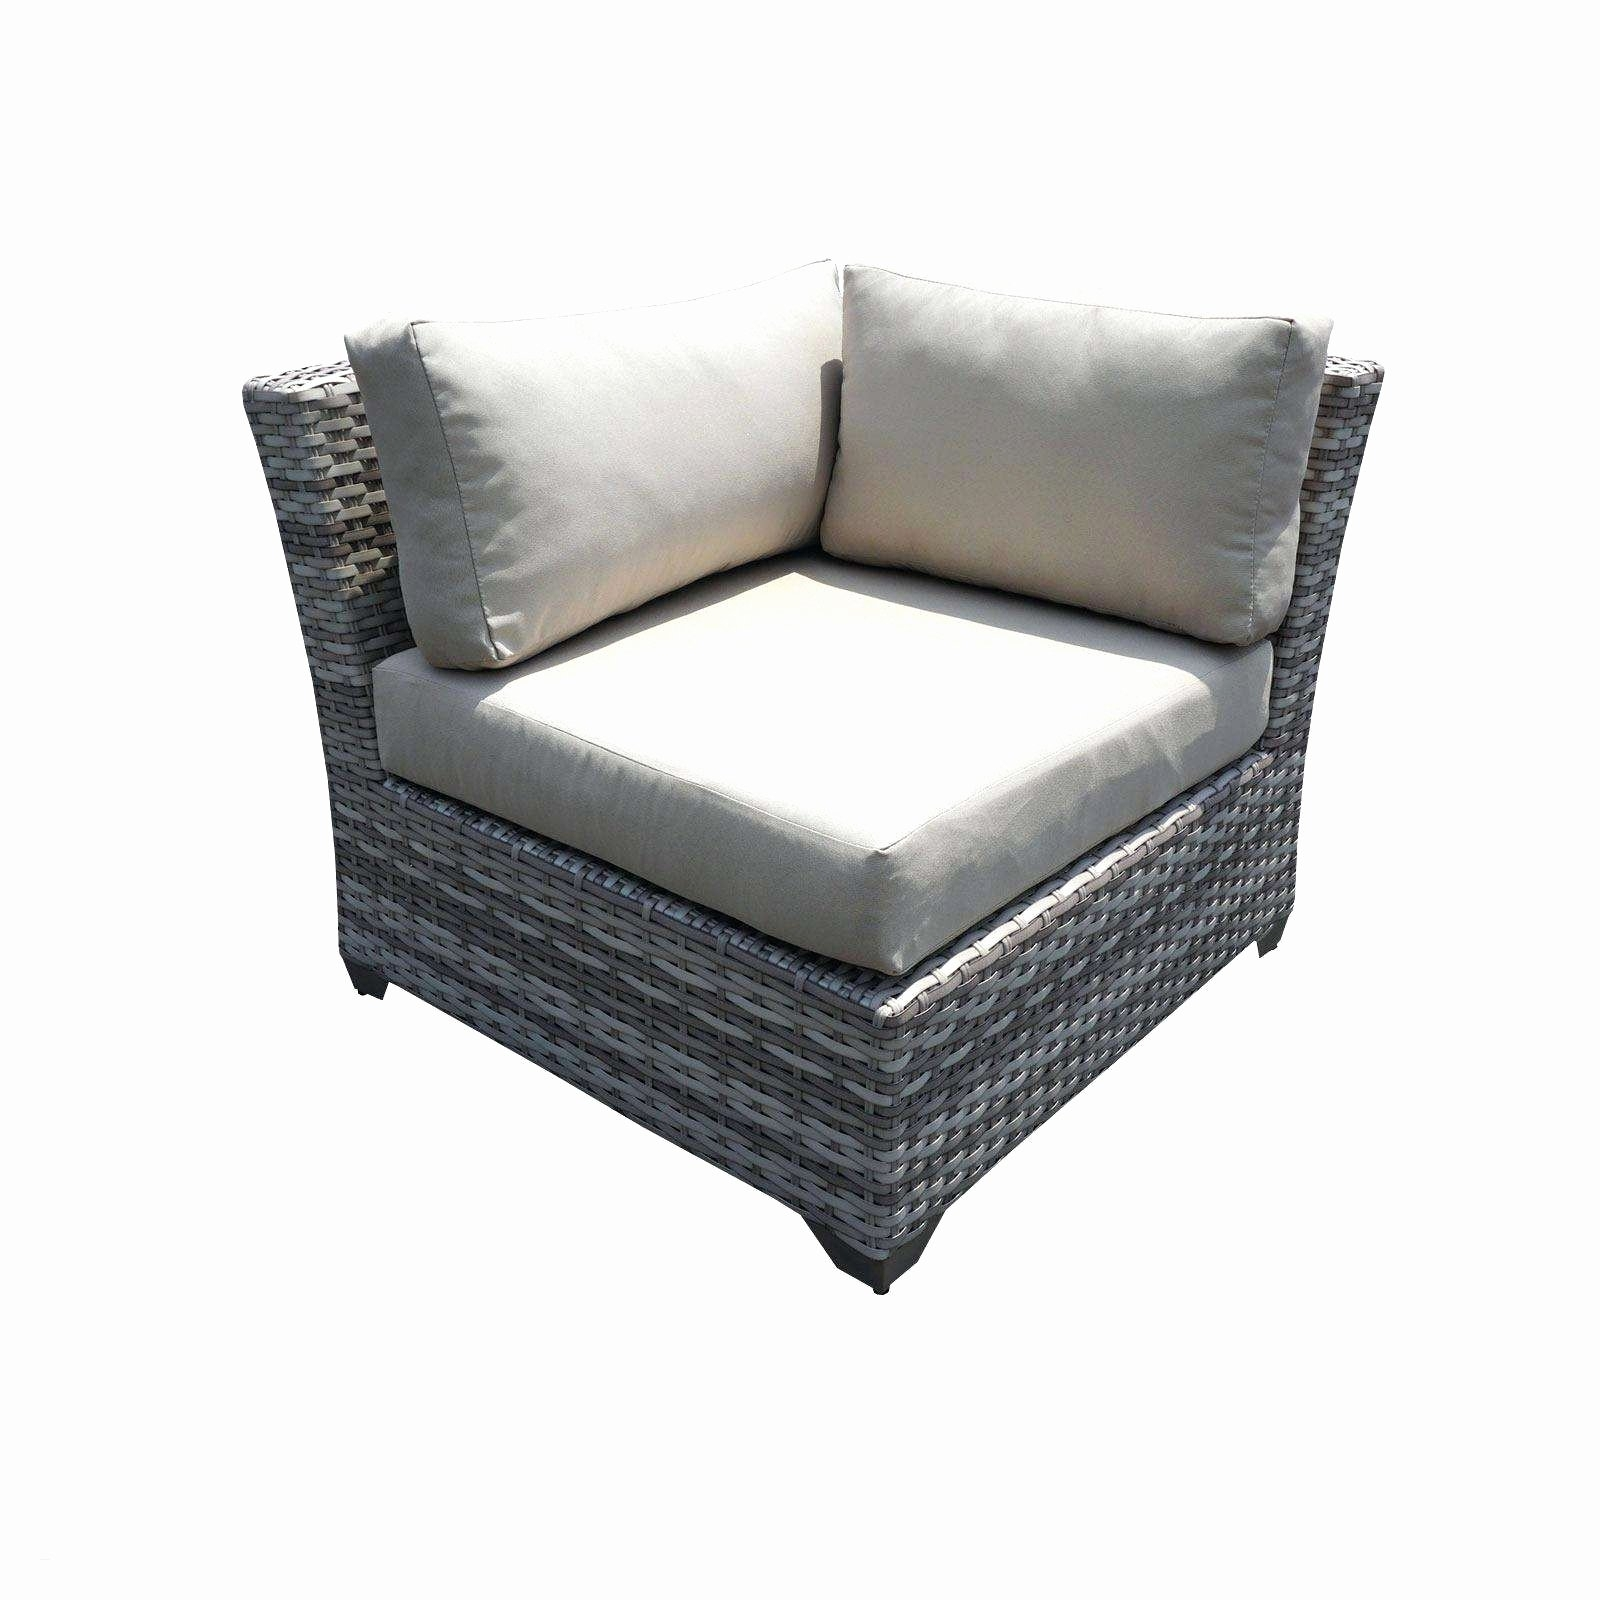 Simple 25 2 Piece Sectionals With Chaise Awesome | Russiandesignshow Intended For Aquarius Light Grey 2 Piece Sectionals With Raf Chaise (View 19 of 25)